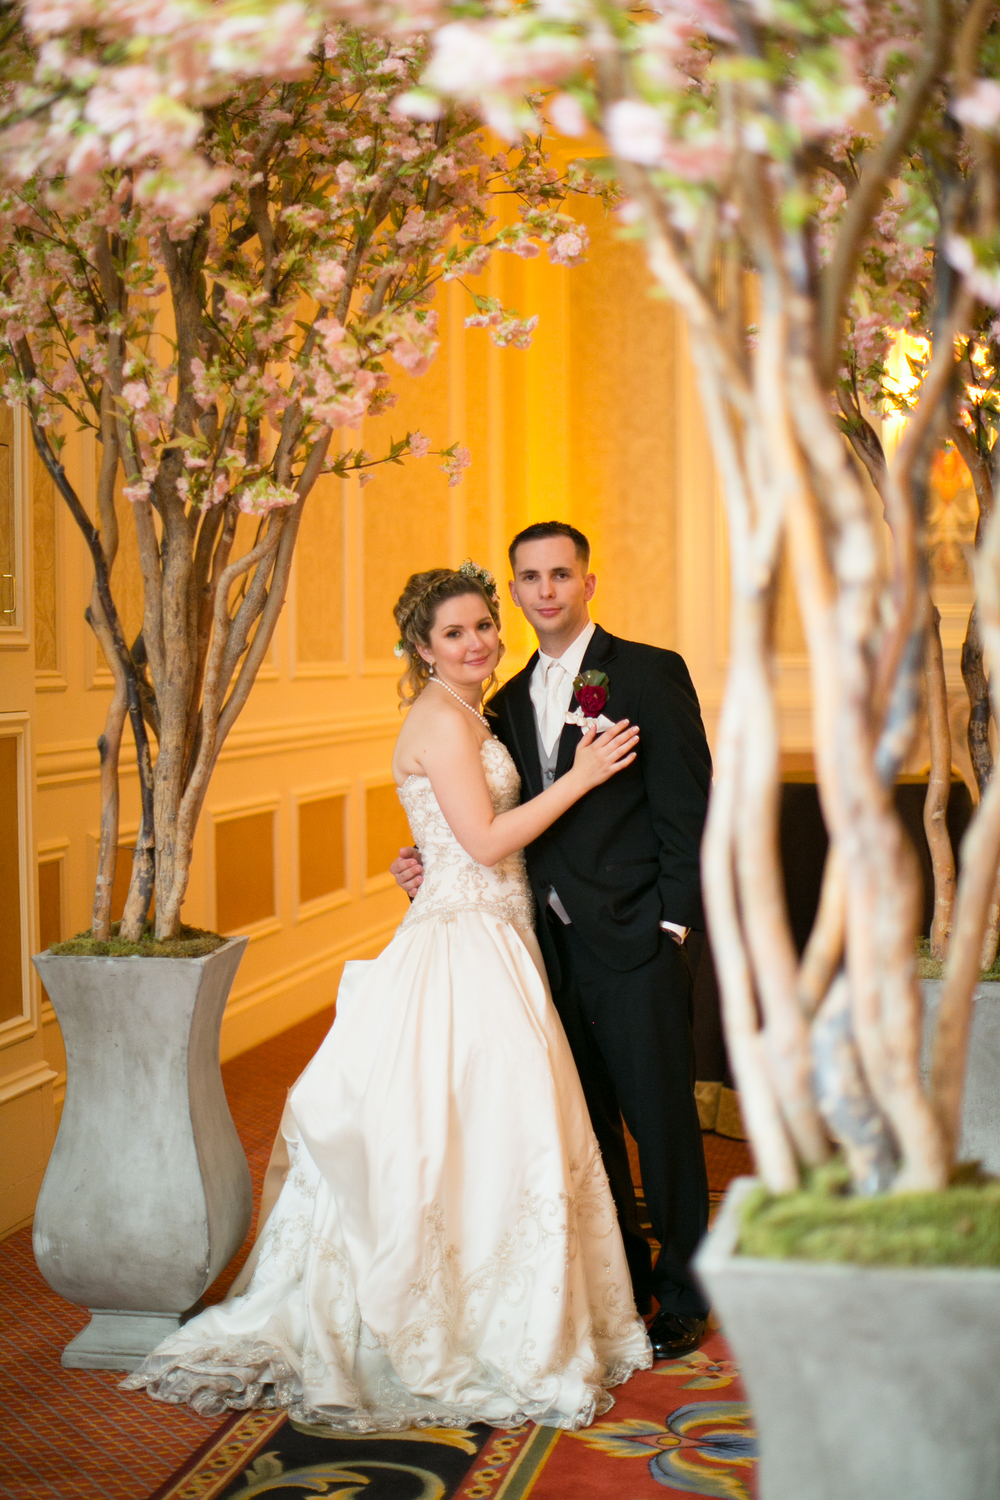 The bride and groom under cherry blossom trees.   Las Vegas Wedding Planner Andrea Eppolito  |  Wedding at The Venetian Las Vegas  |  Florals and Decor by Naakiti Floral  |  Photos by Meg Ruth